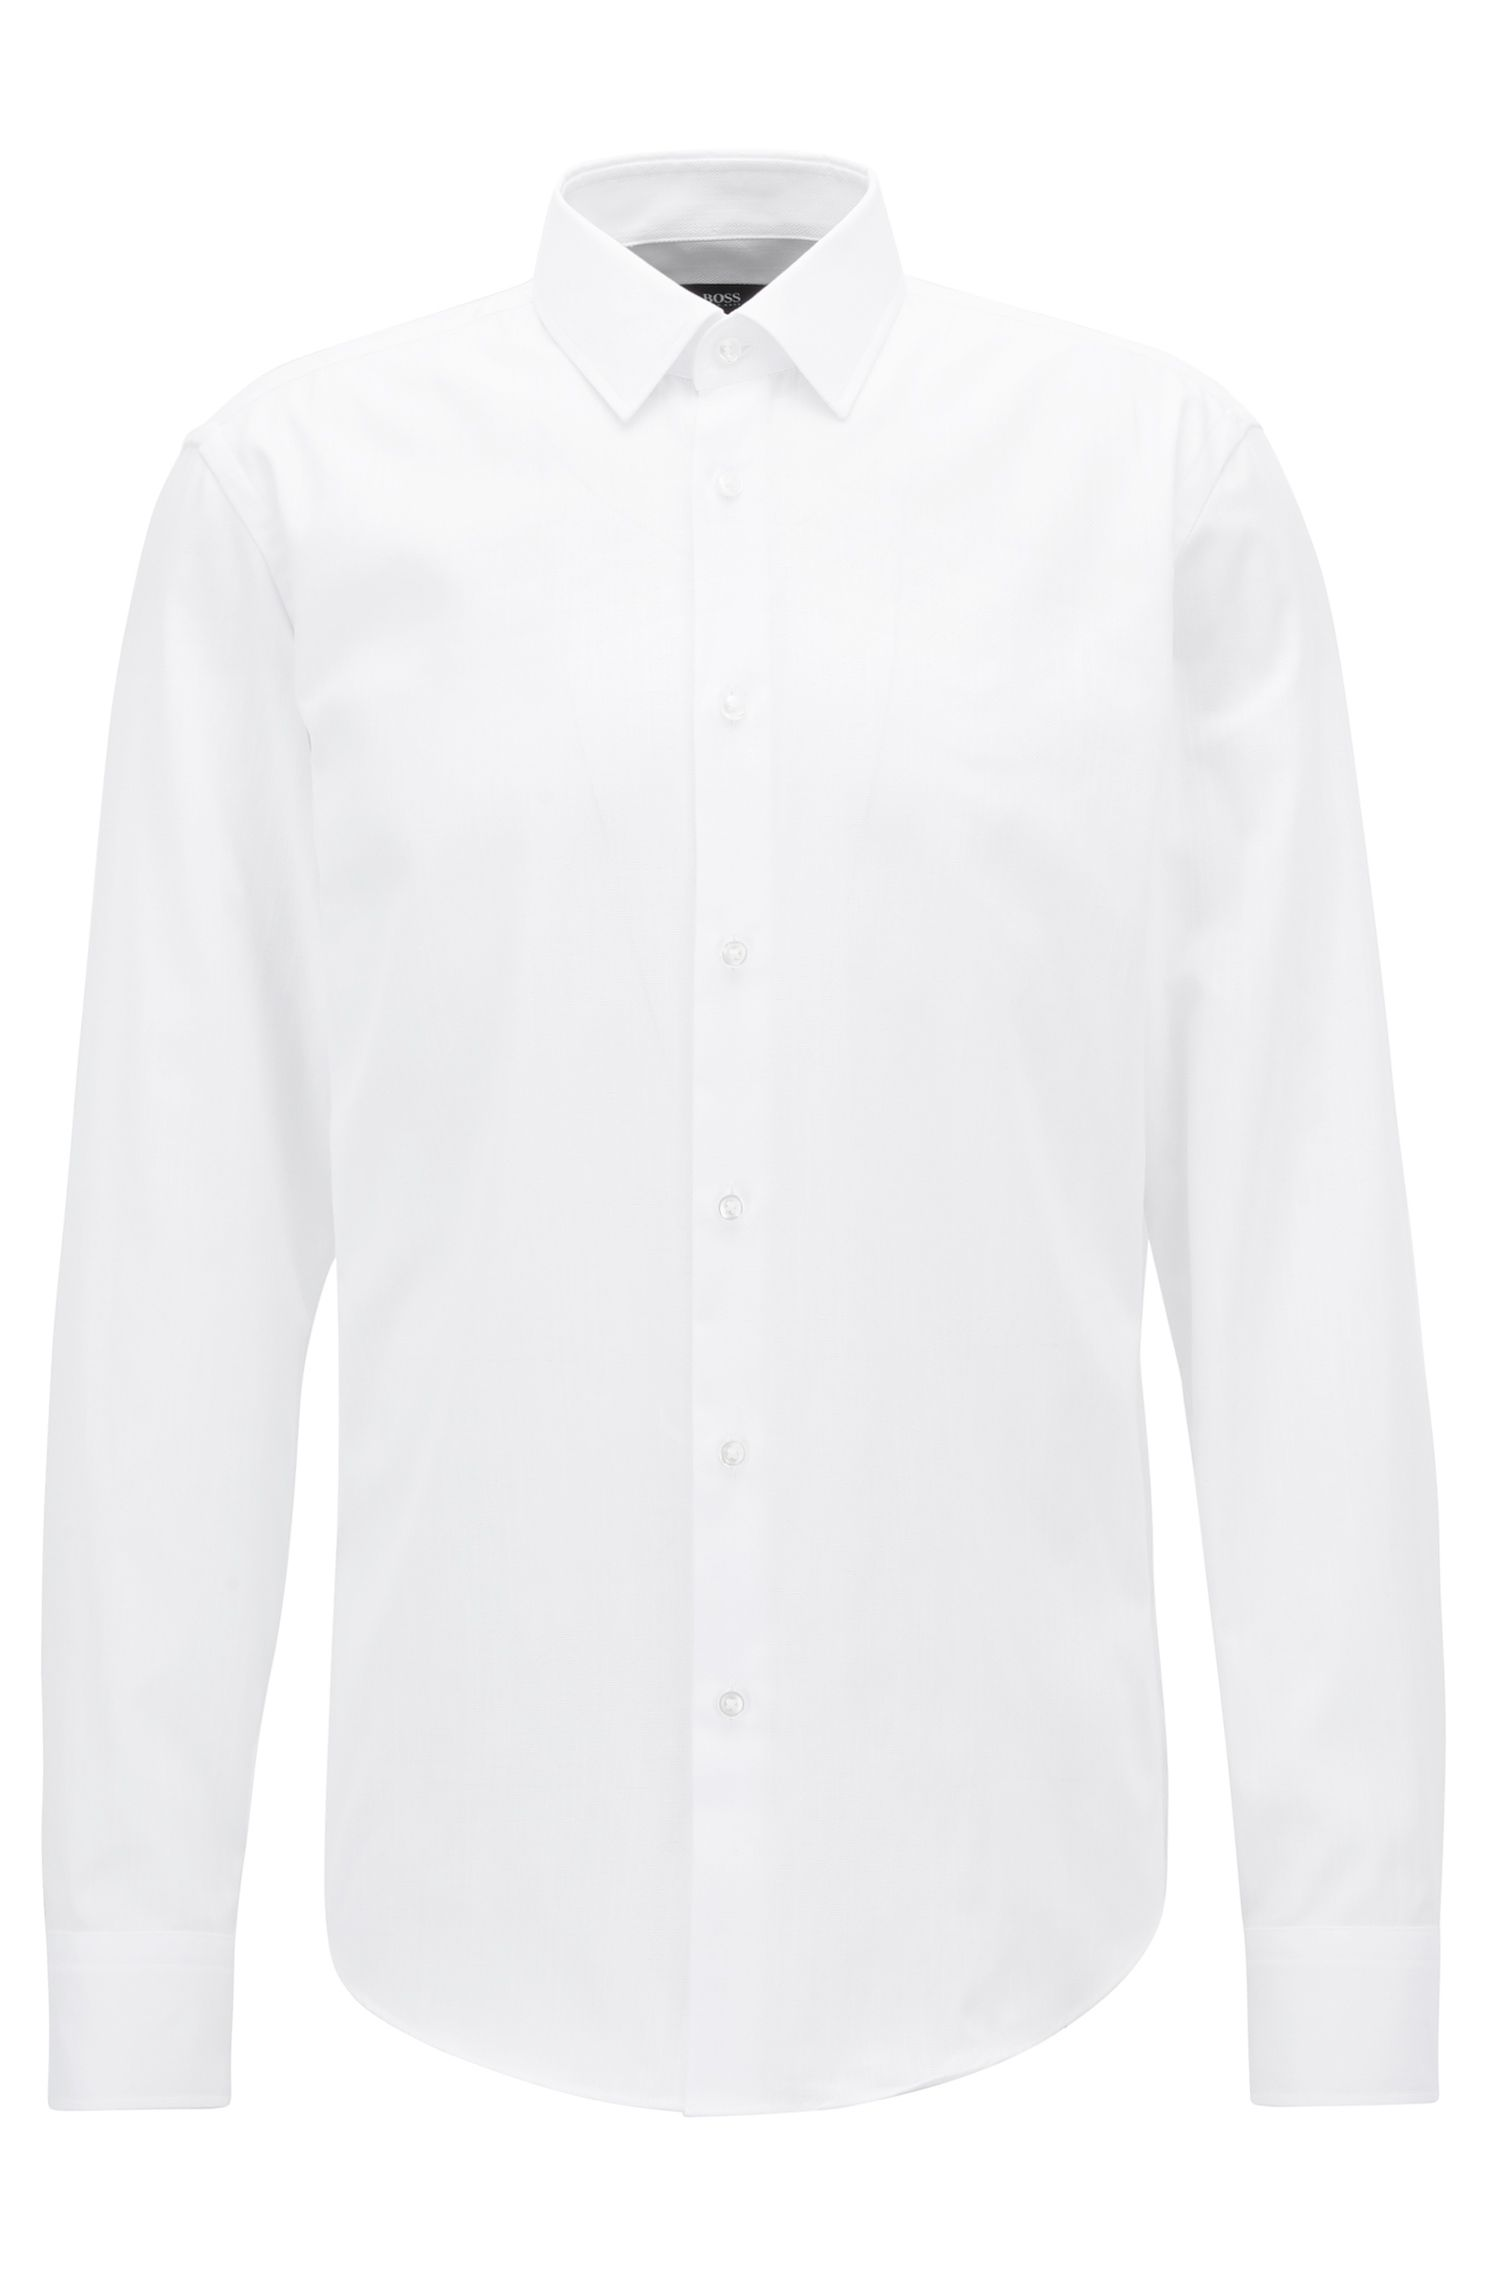 Regular-fit shirt in pure Oxford cotton